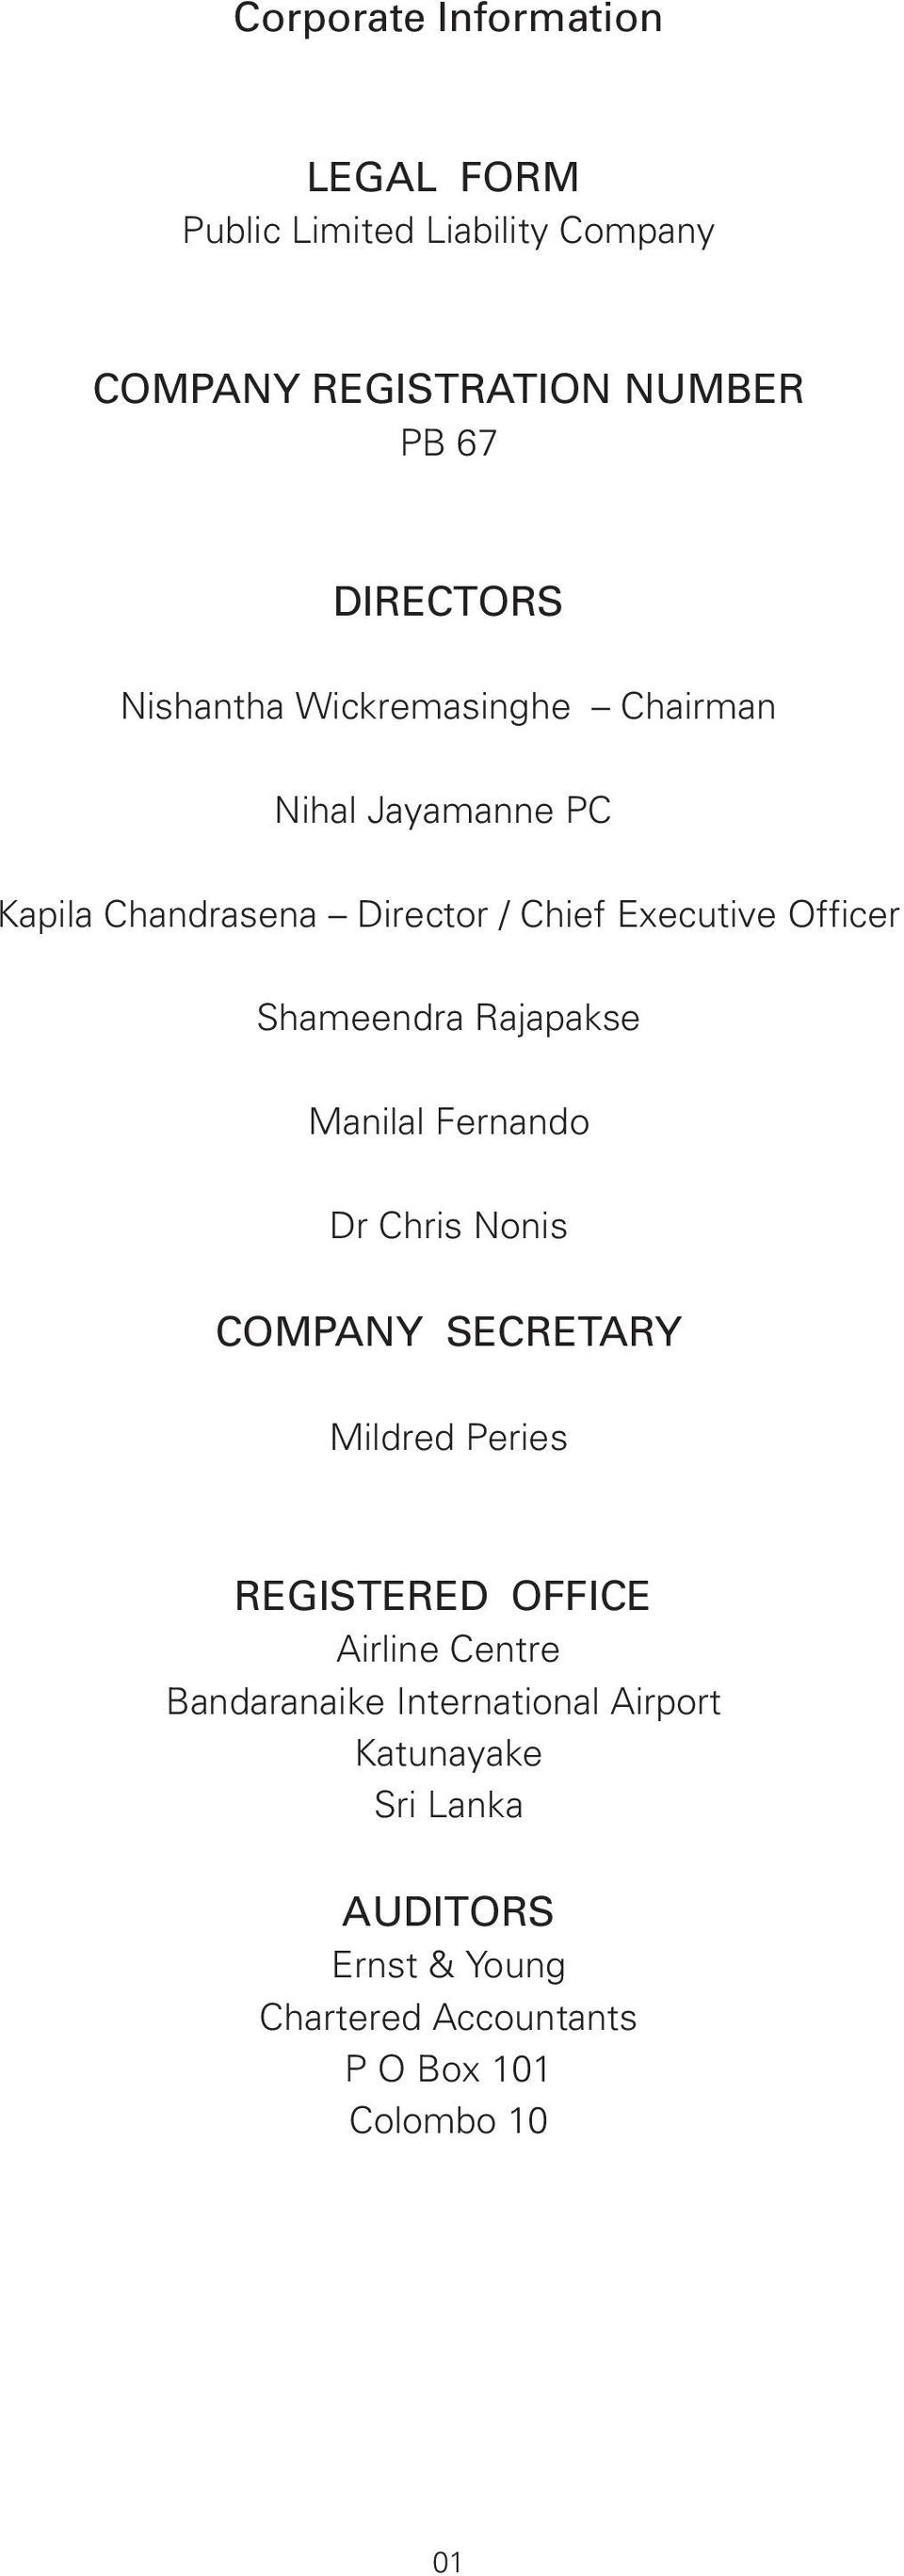 Shameendra Rajapakse Manilal Fernando Dr Chris Nonis COMPANY SECRETARY Mildred Peries REGISTERED OFFICE Airline